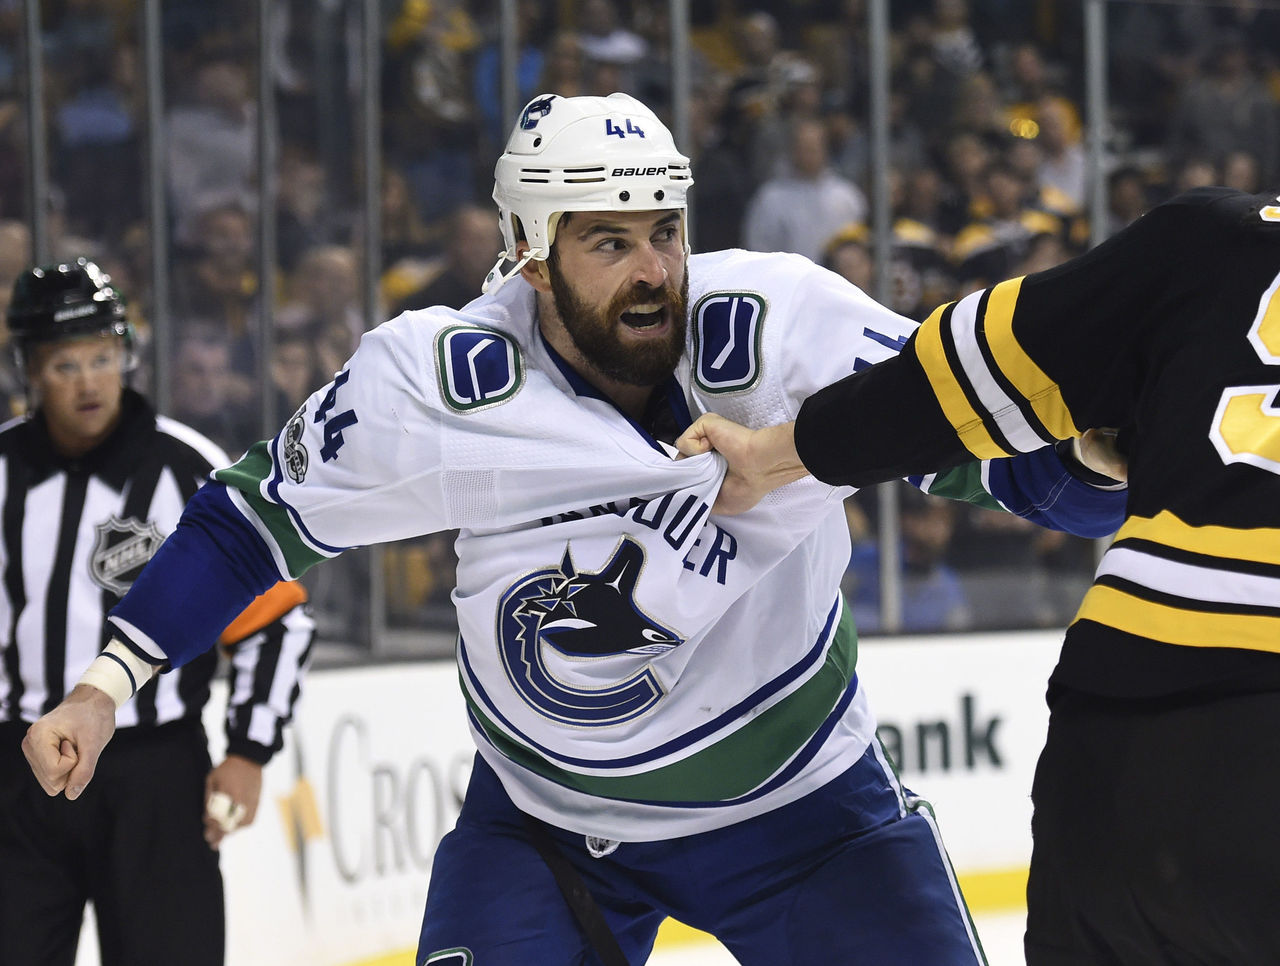 Cropped 2017 10 20t023838z 415277923 nocid rtrmadp 3 nhl vancouver canucks at boston bruins